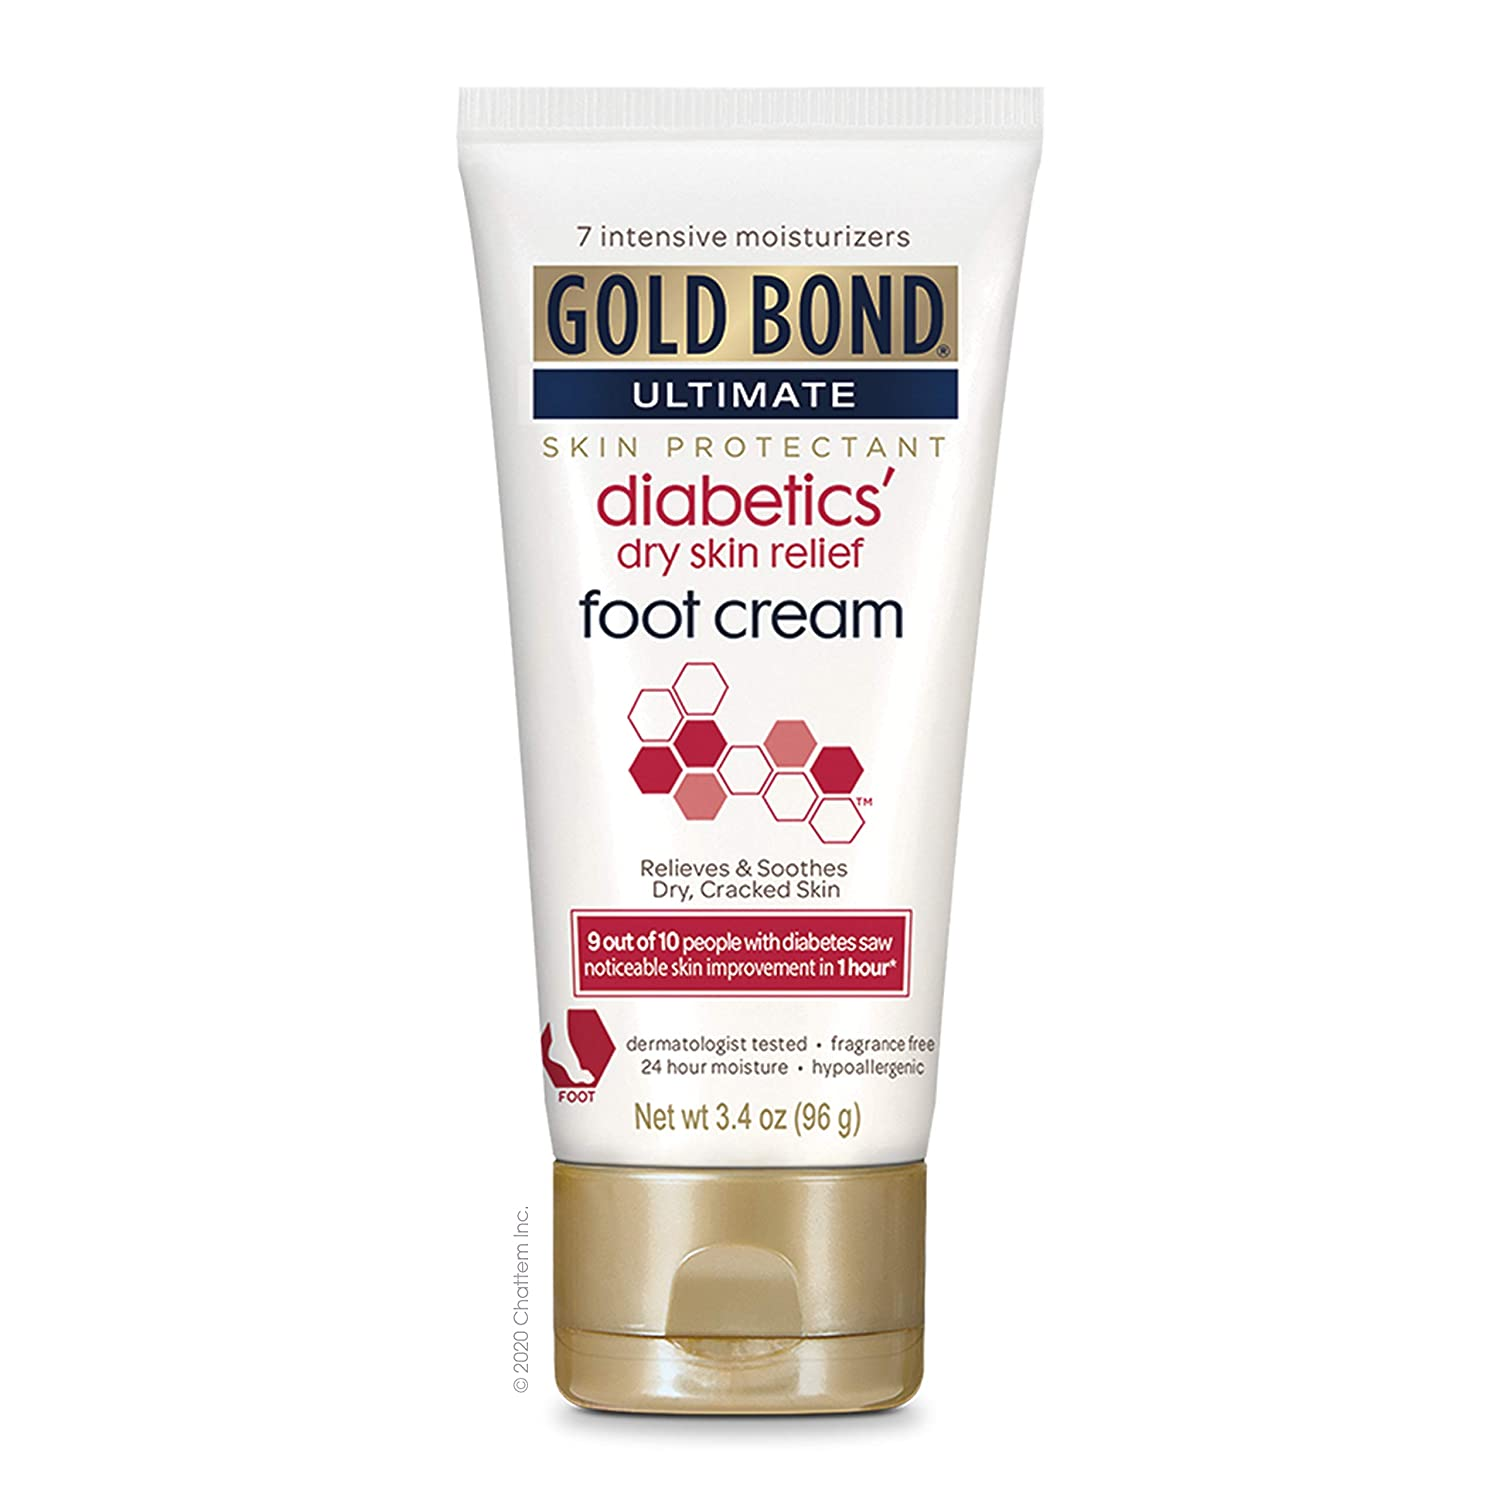 Gold Bond Ultimate Diabetics Dry Skin Relief, 4.5 Ounce: Health & Personal Care